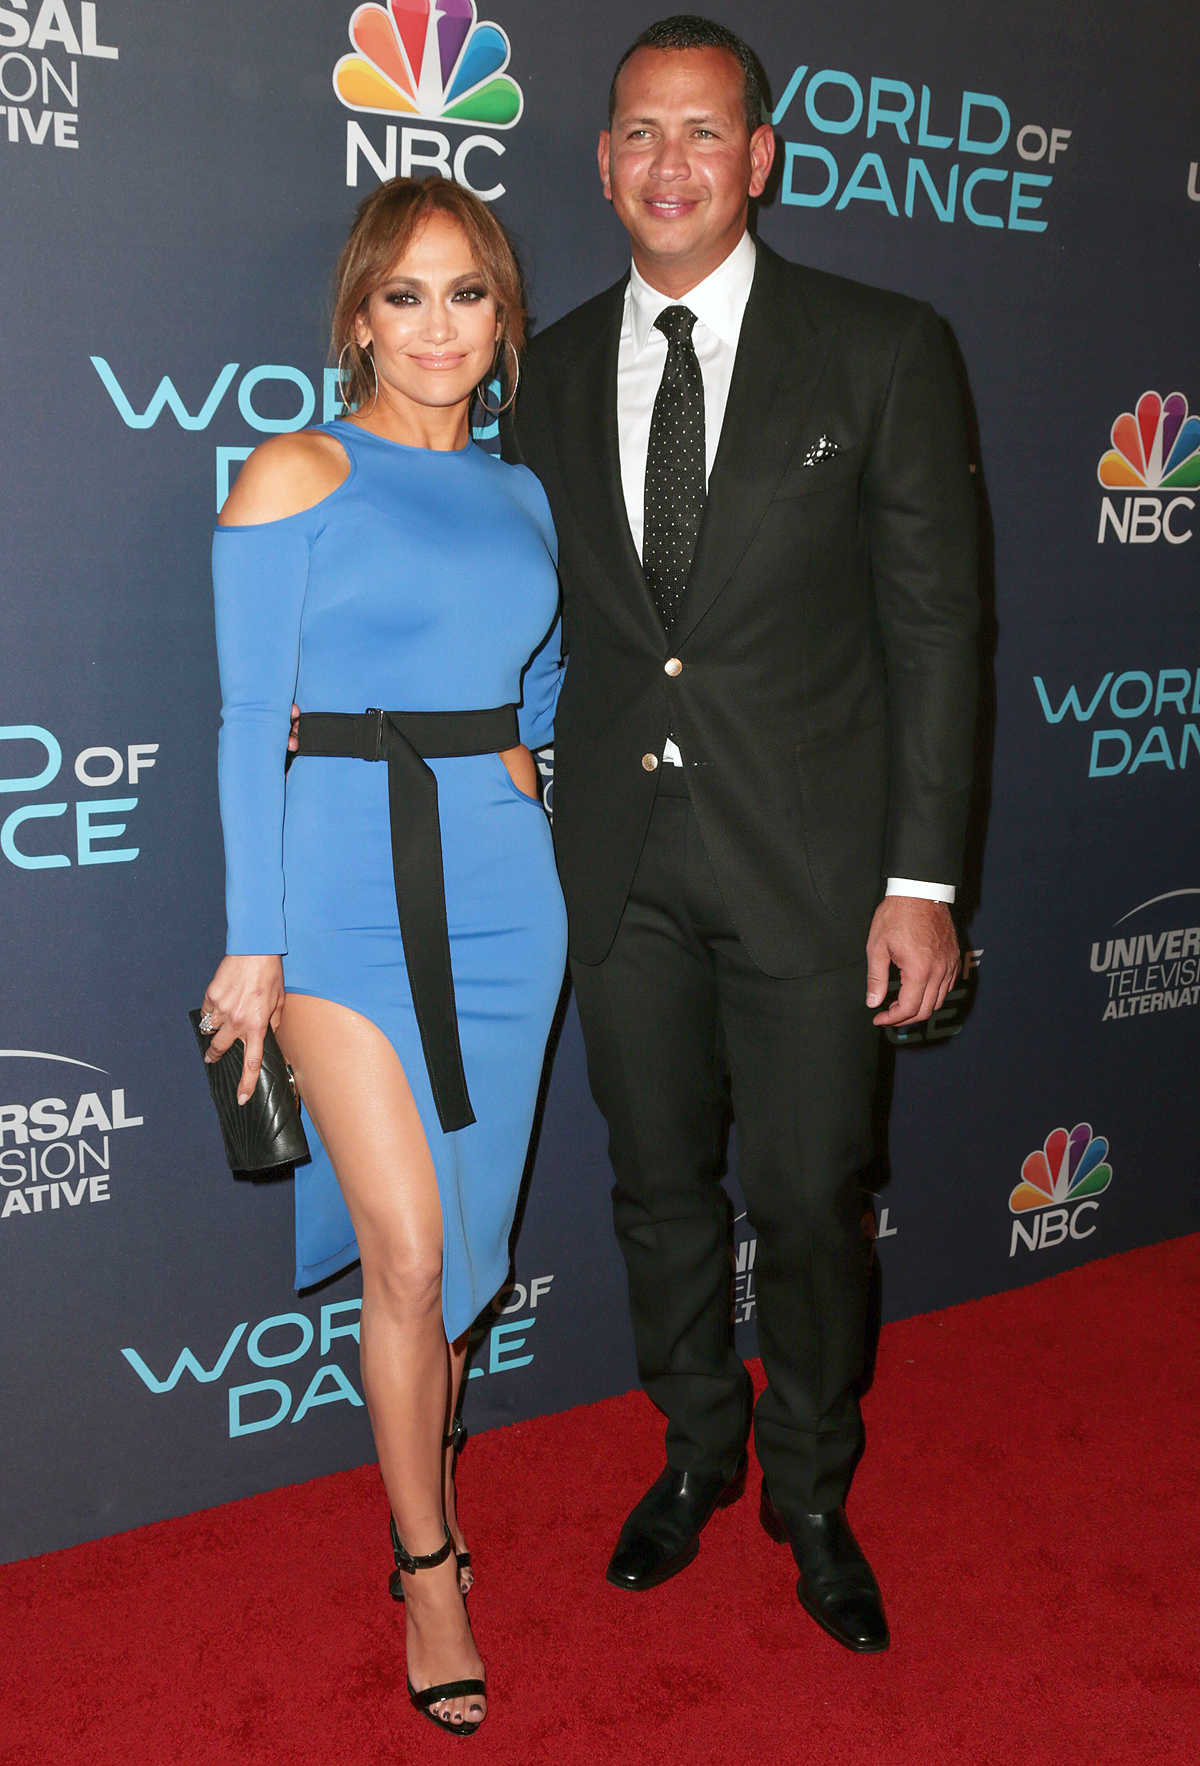 Jennifer Lopez and Alex Rodriguez arrive to World of Dance Event in Hollywood